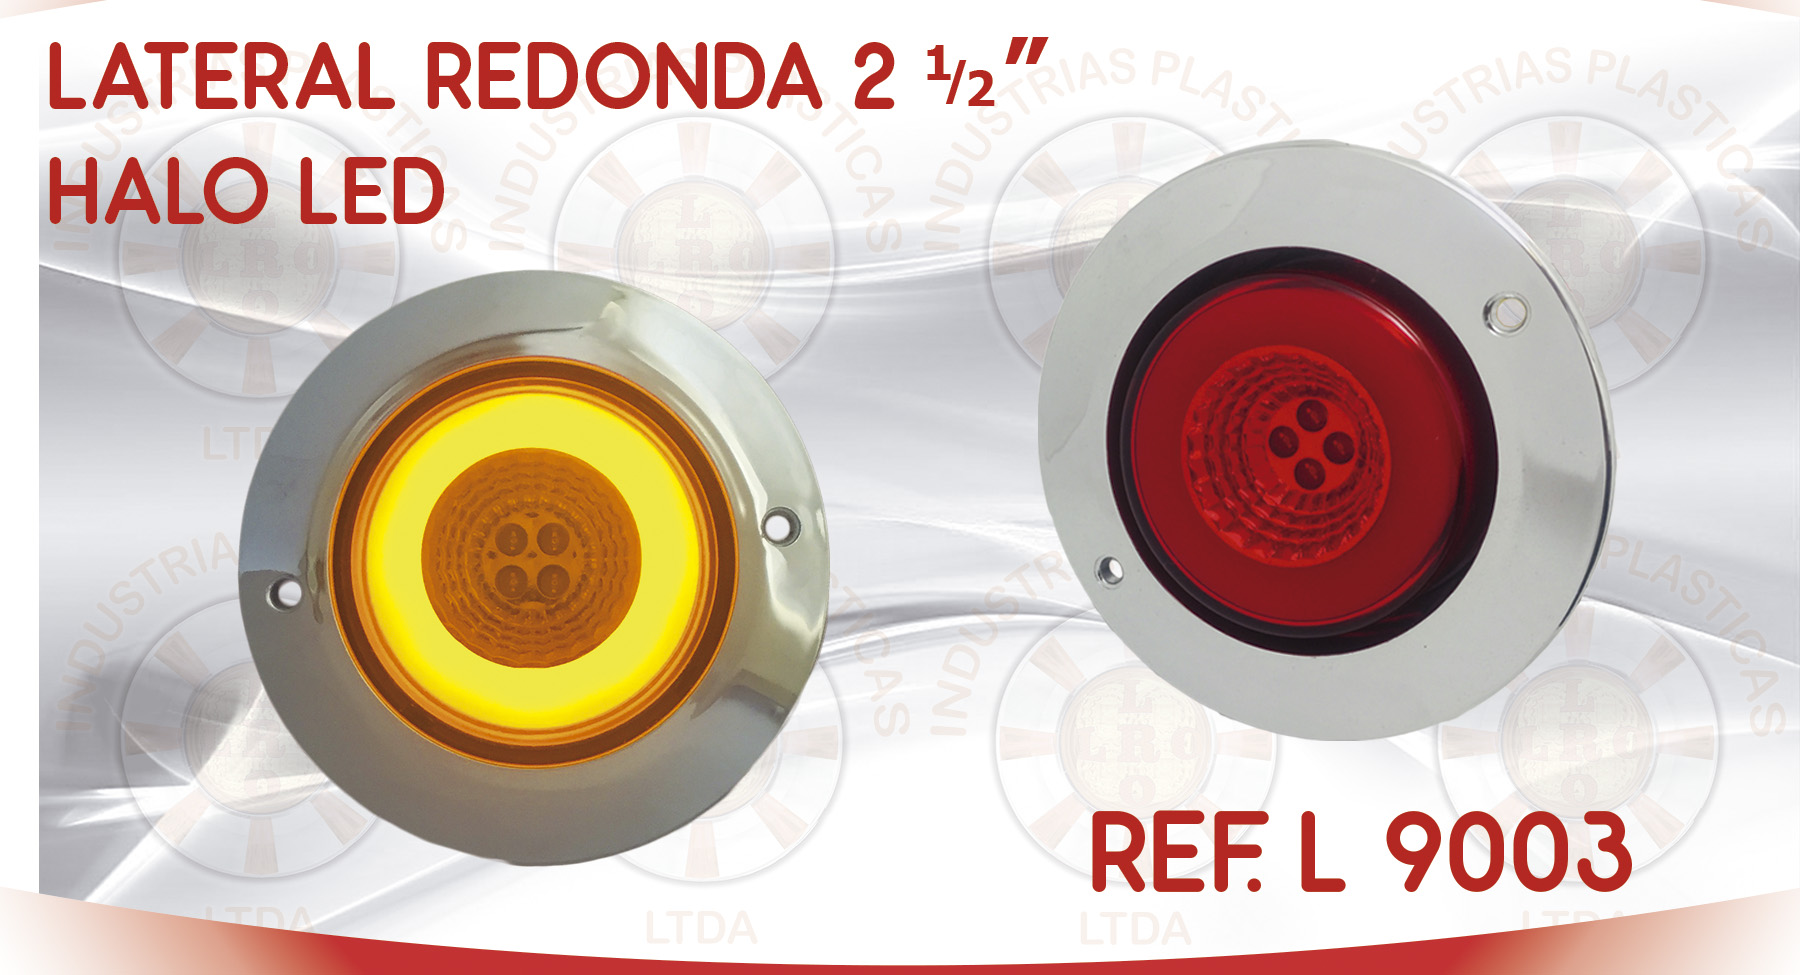 L 9003 LATERAL REDONDA 2 Y MEDIA PULGADAS HALO LED